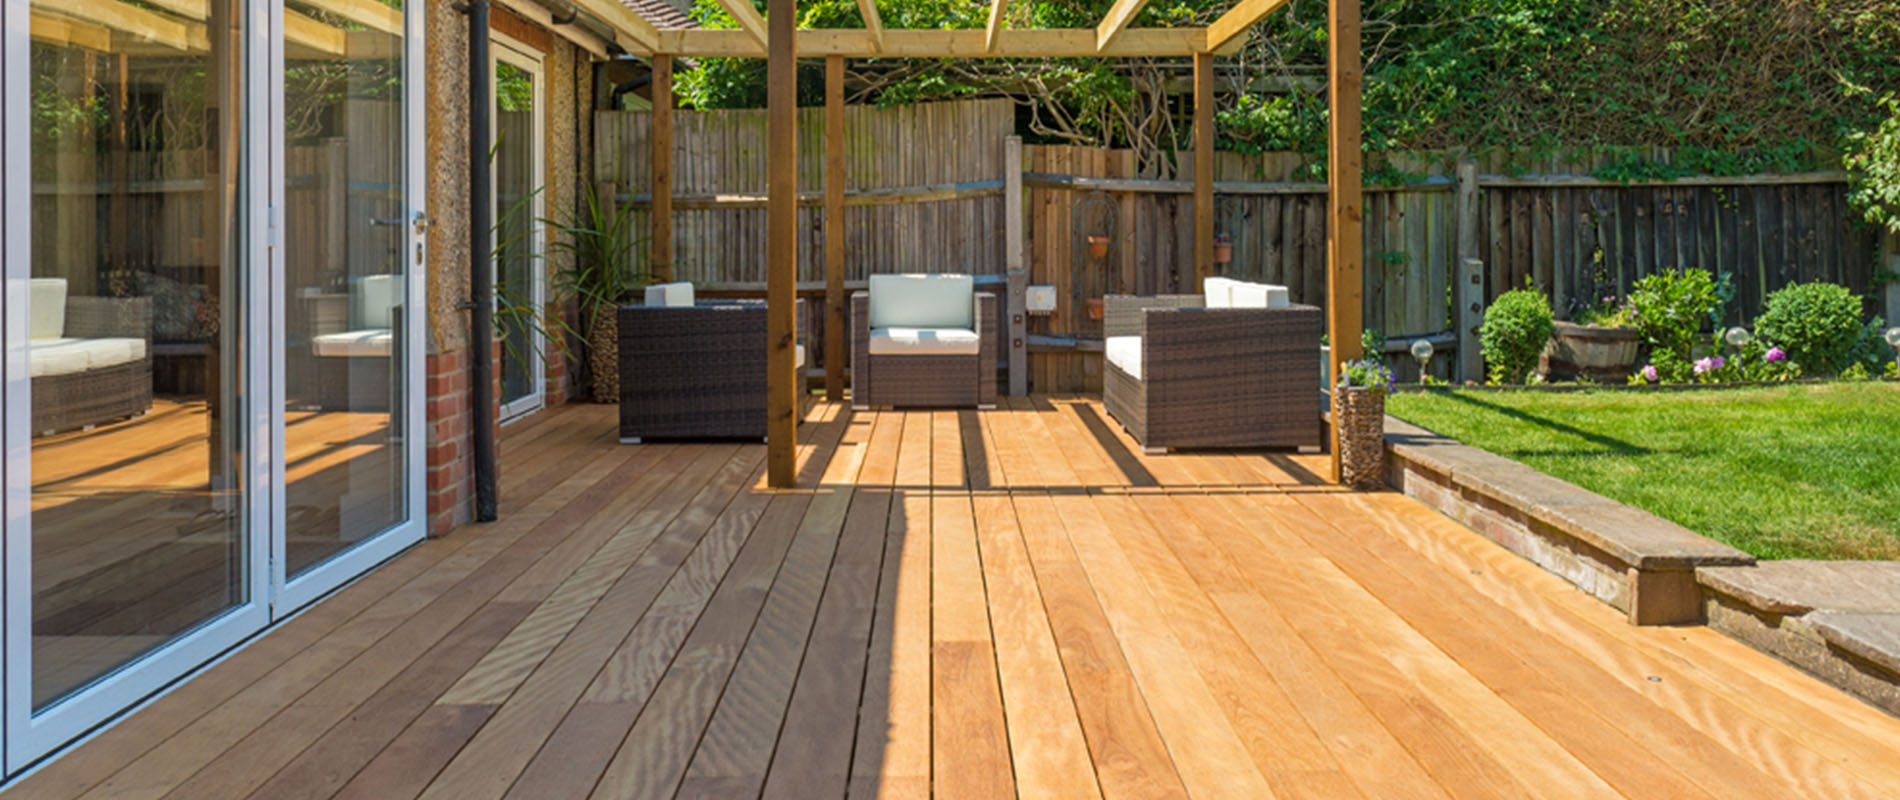 Mandioqueira decking provides superb outdoor living space